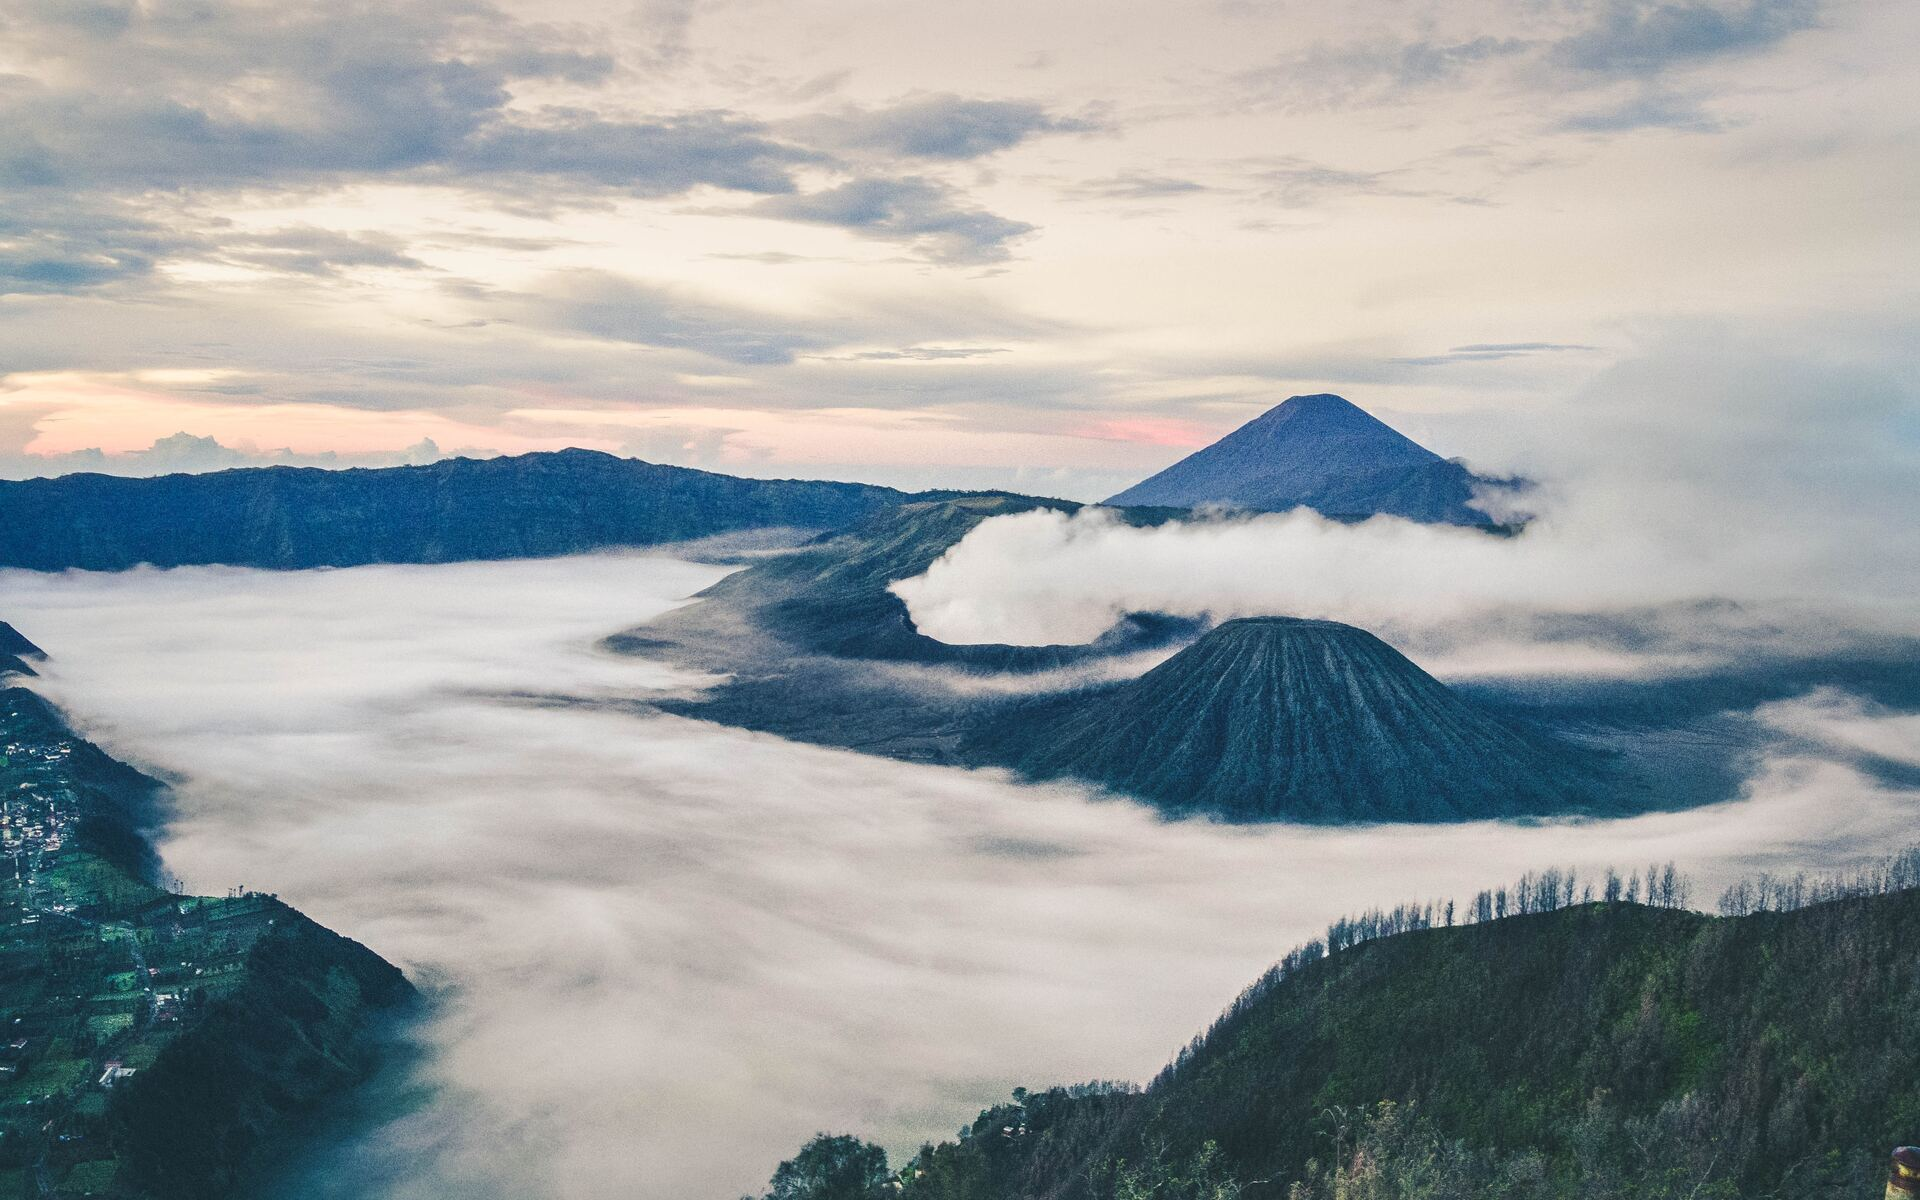 mount-bromo-east-java-indonesia-4k-ok.jpg